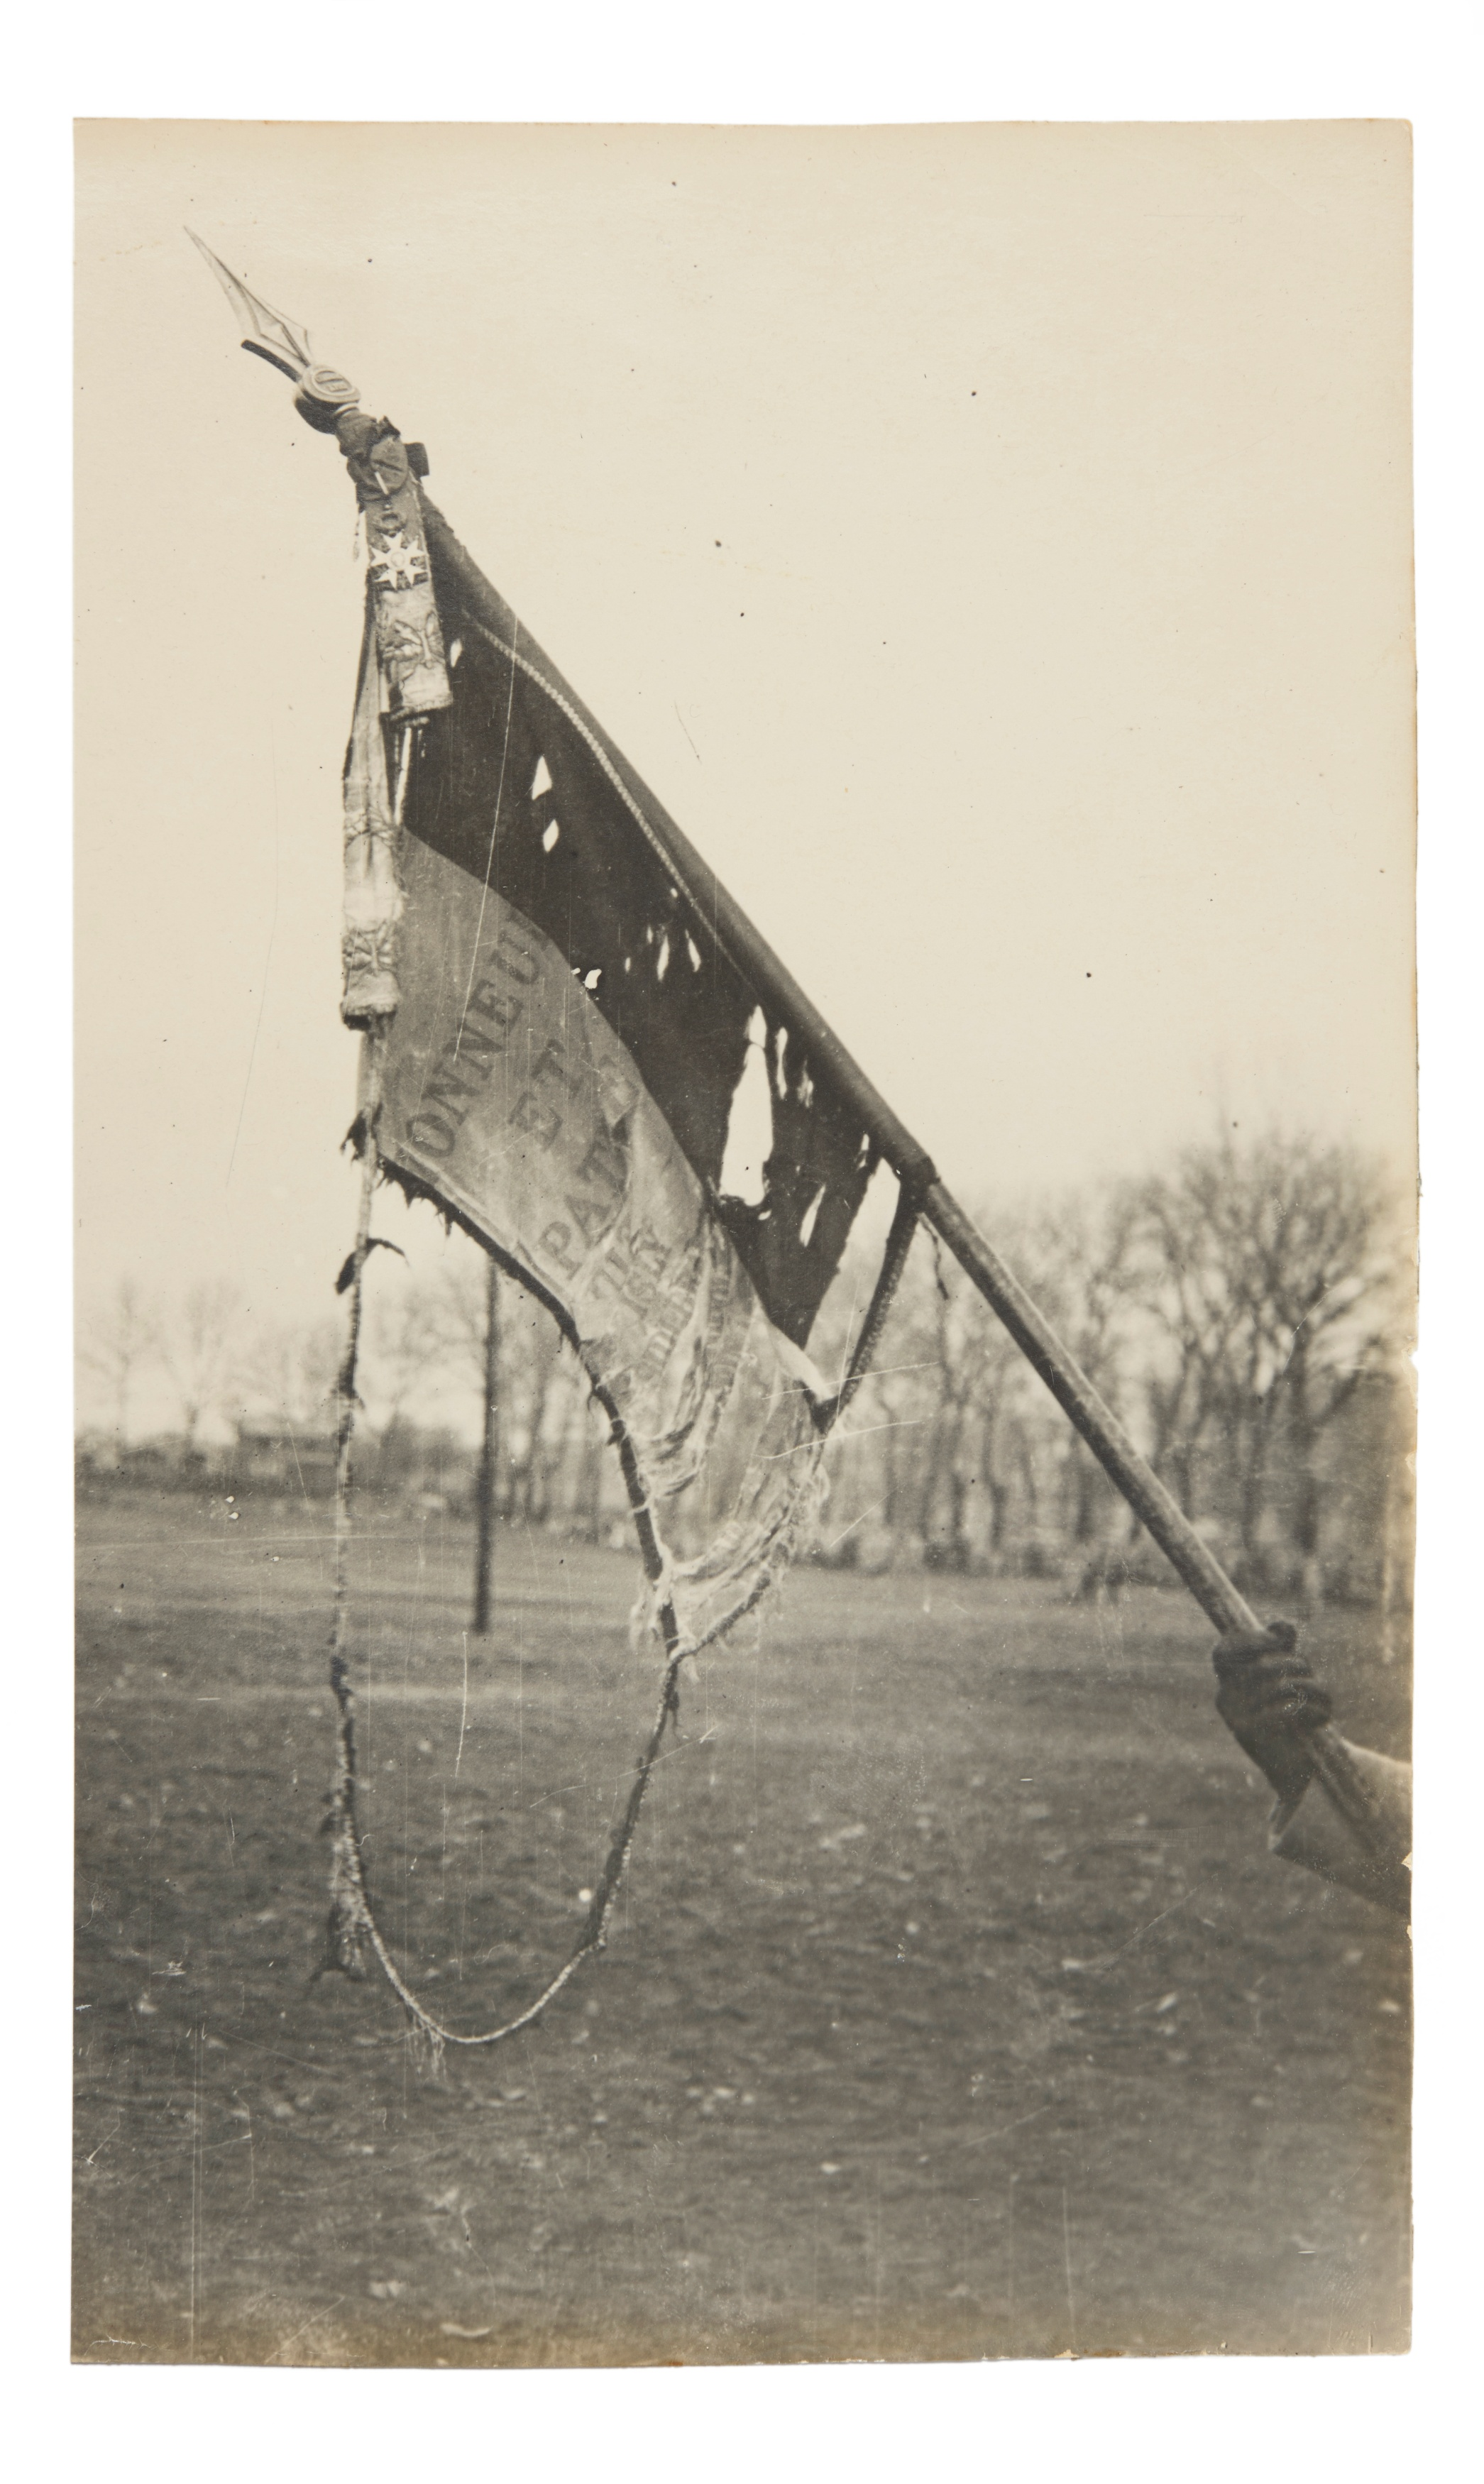 Legendre, Damaged French regimental flag, silver gelatin print, 1914-1918© as a collection by Jacques Herzog und Pierre de Meuron Kabinett, Basel.